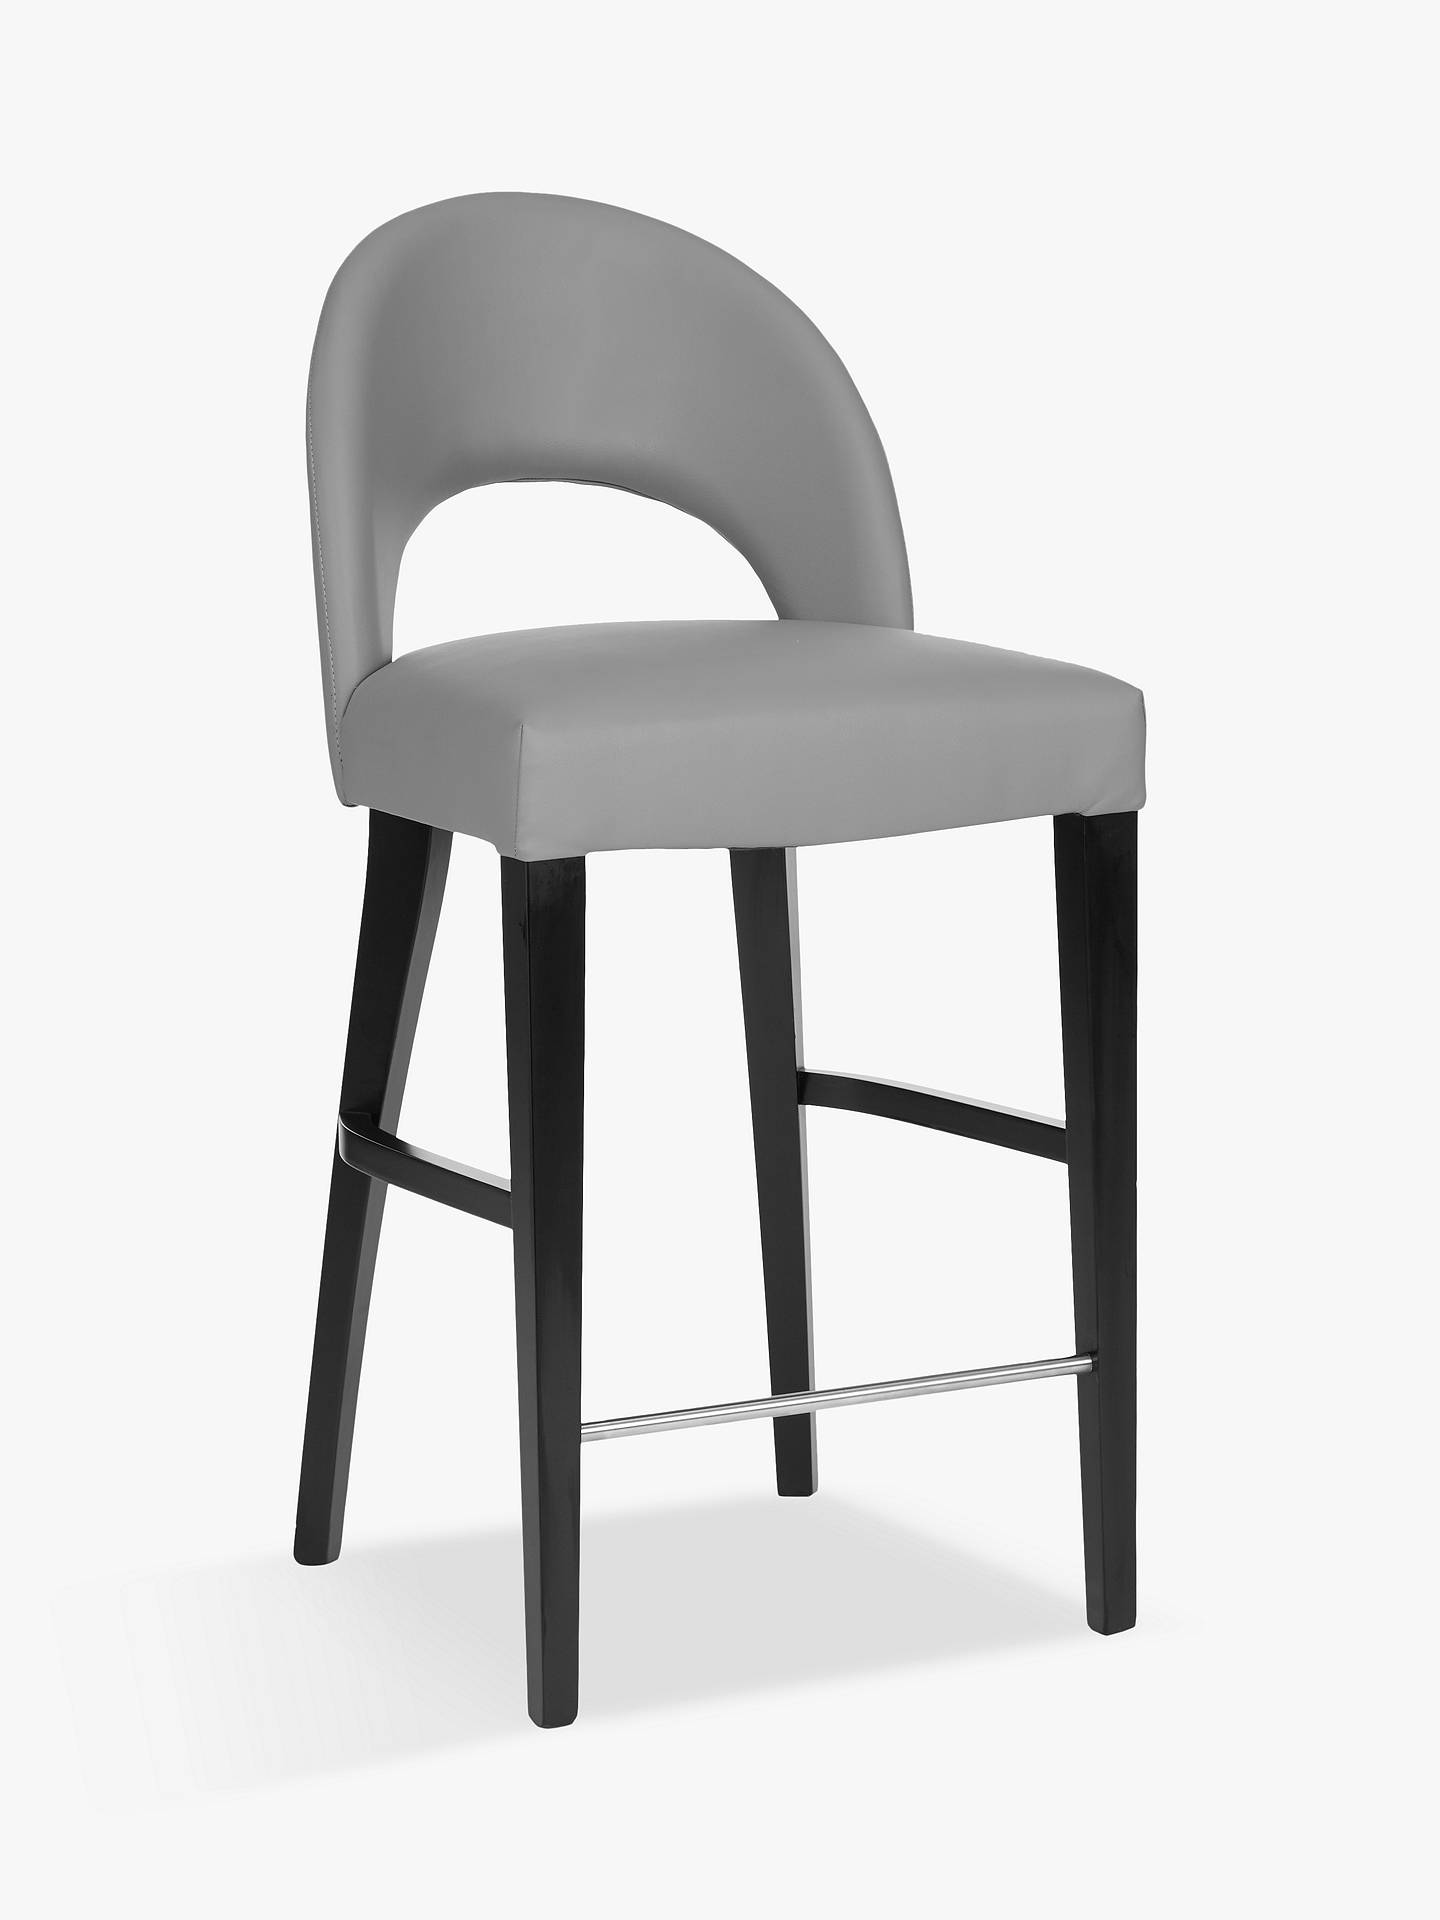 Stupendous Gray Leather Bar Stools Machost Co Dining Chair Design Ideas Machostcouk